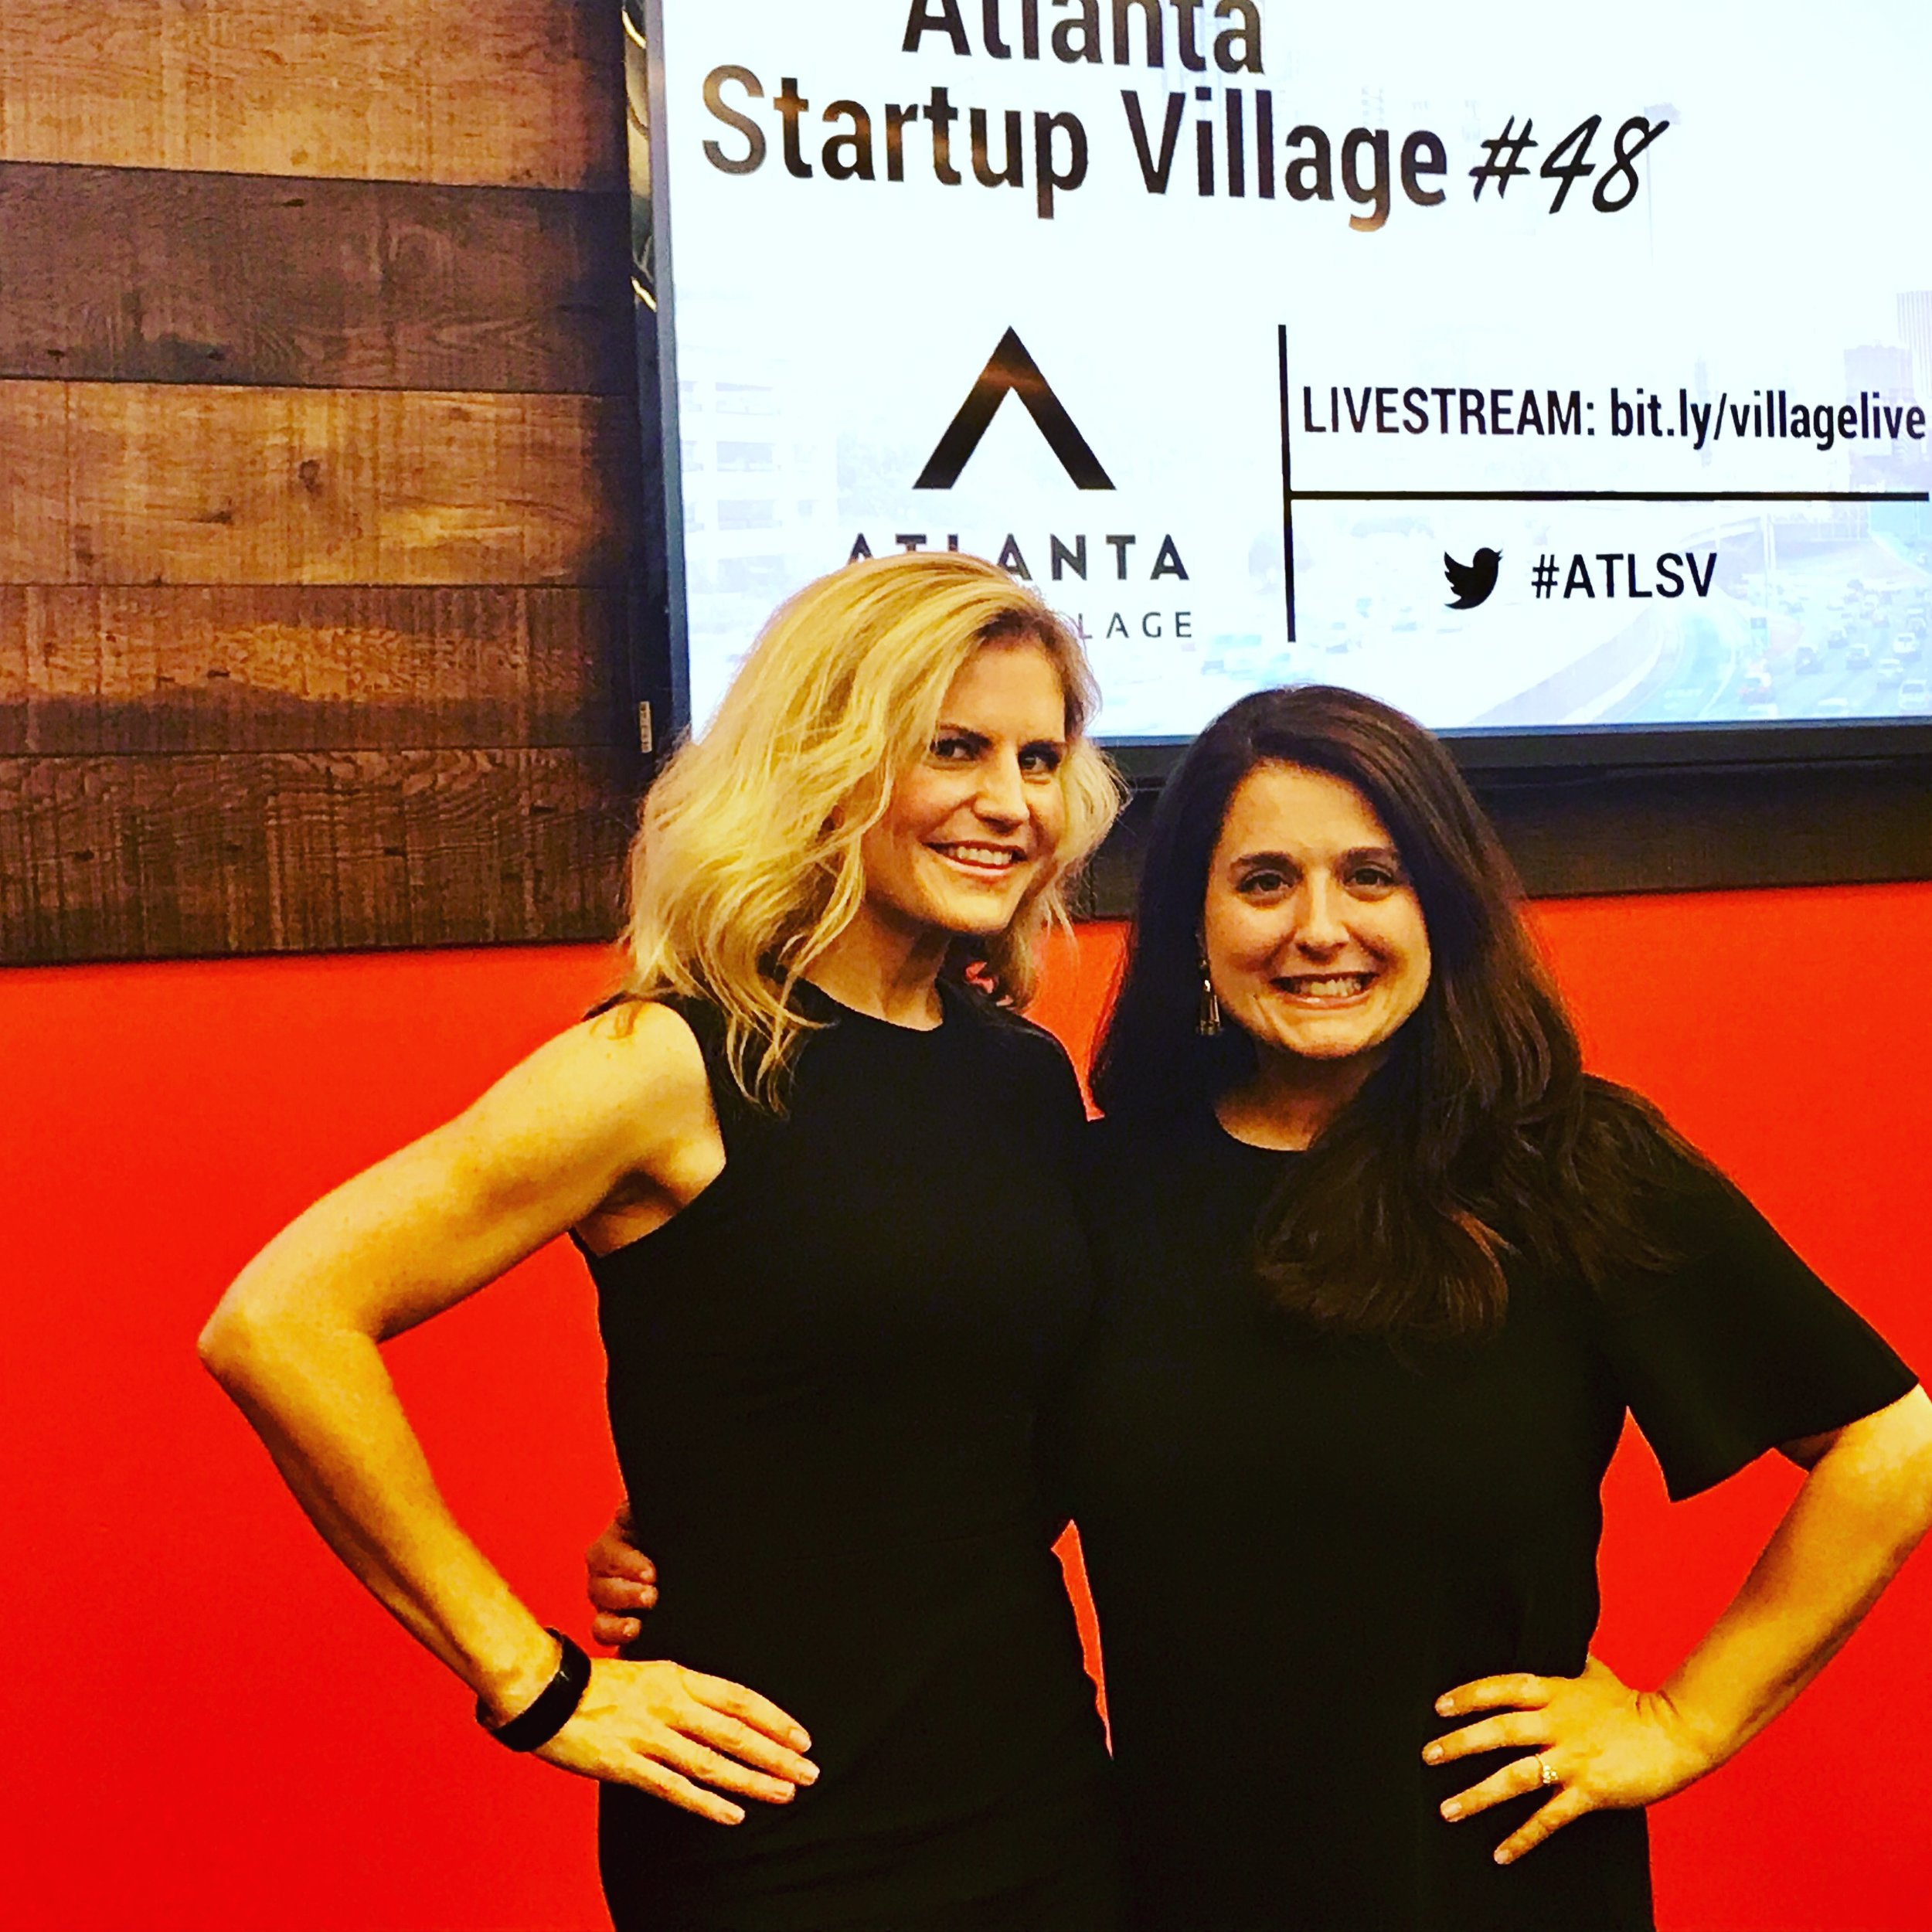 #ATLSV - Fascinating presentations by the coolest tech startups.